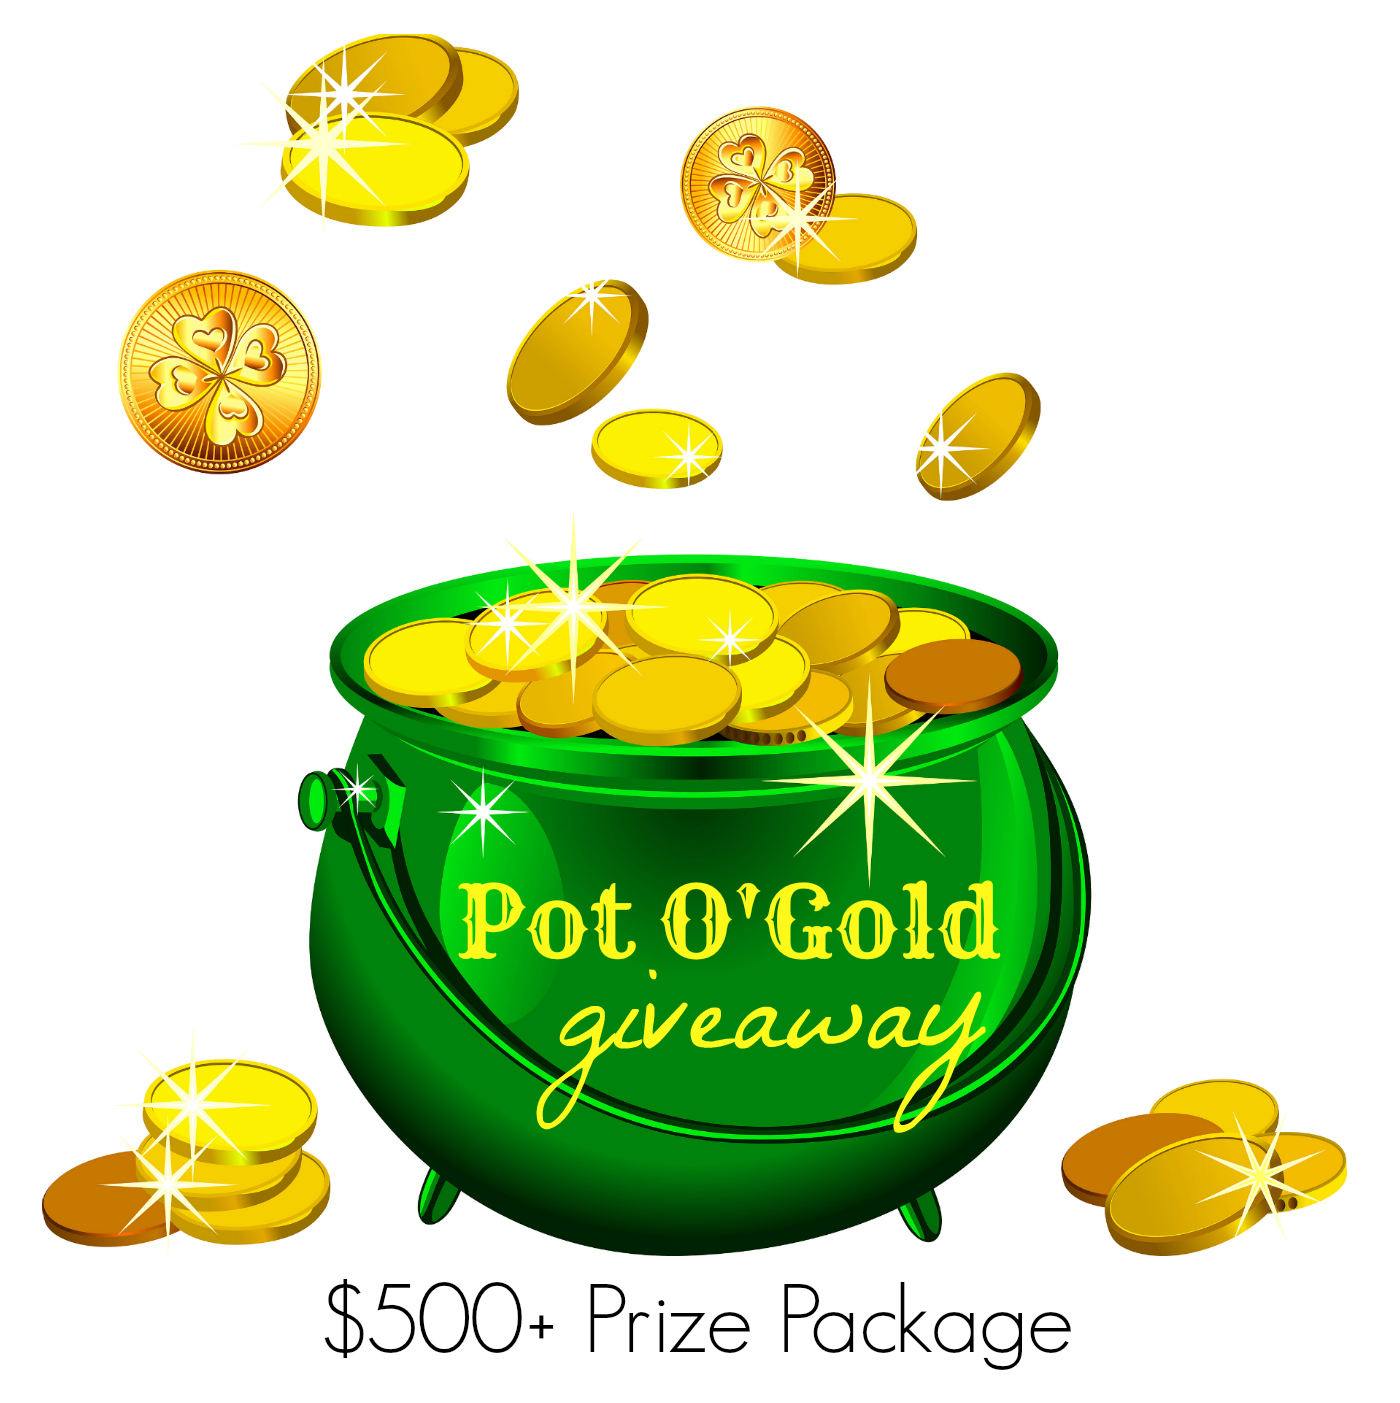 Pot O'Gold Giveaway